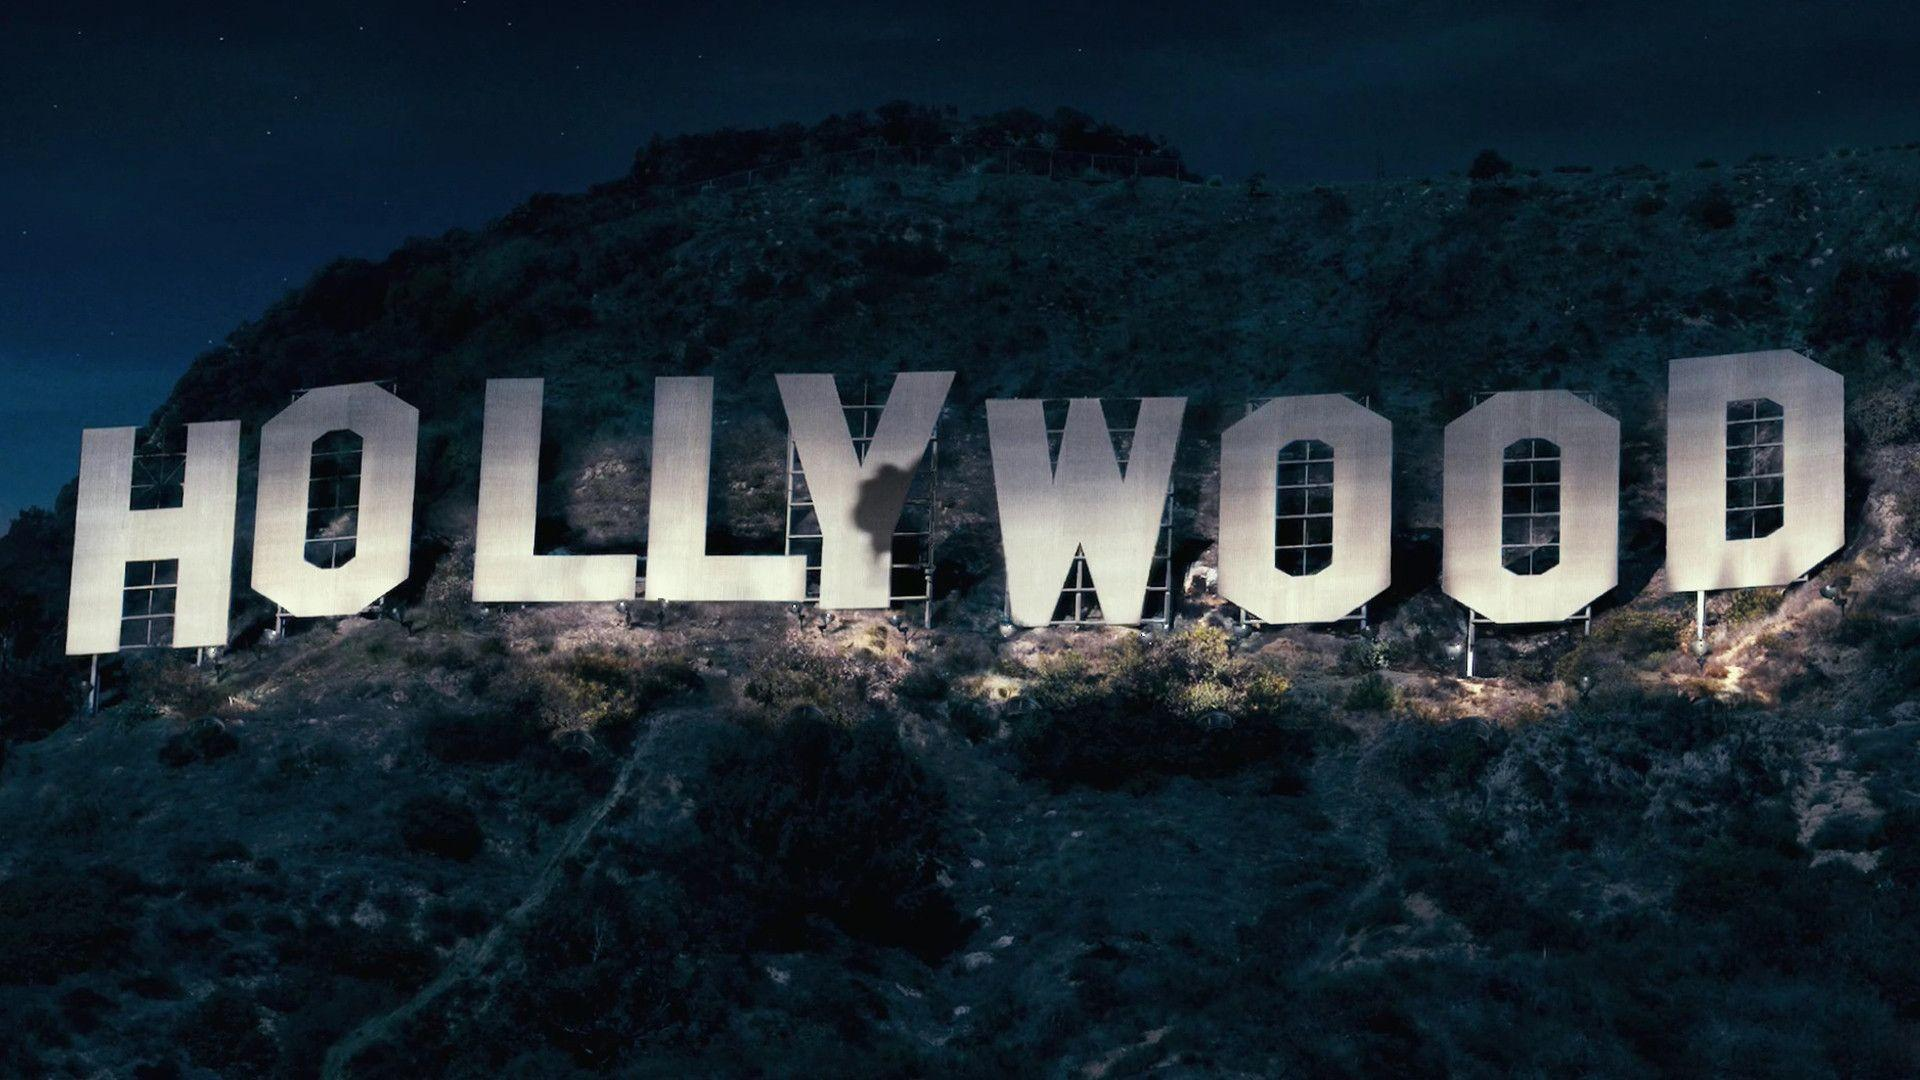 wallpapers a hollywood - photo #1